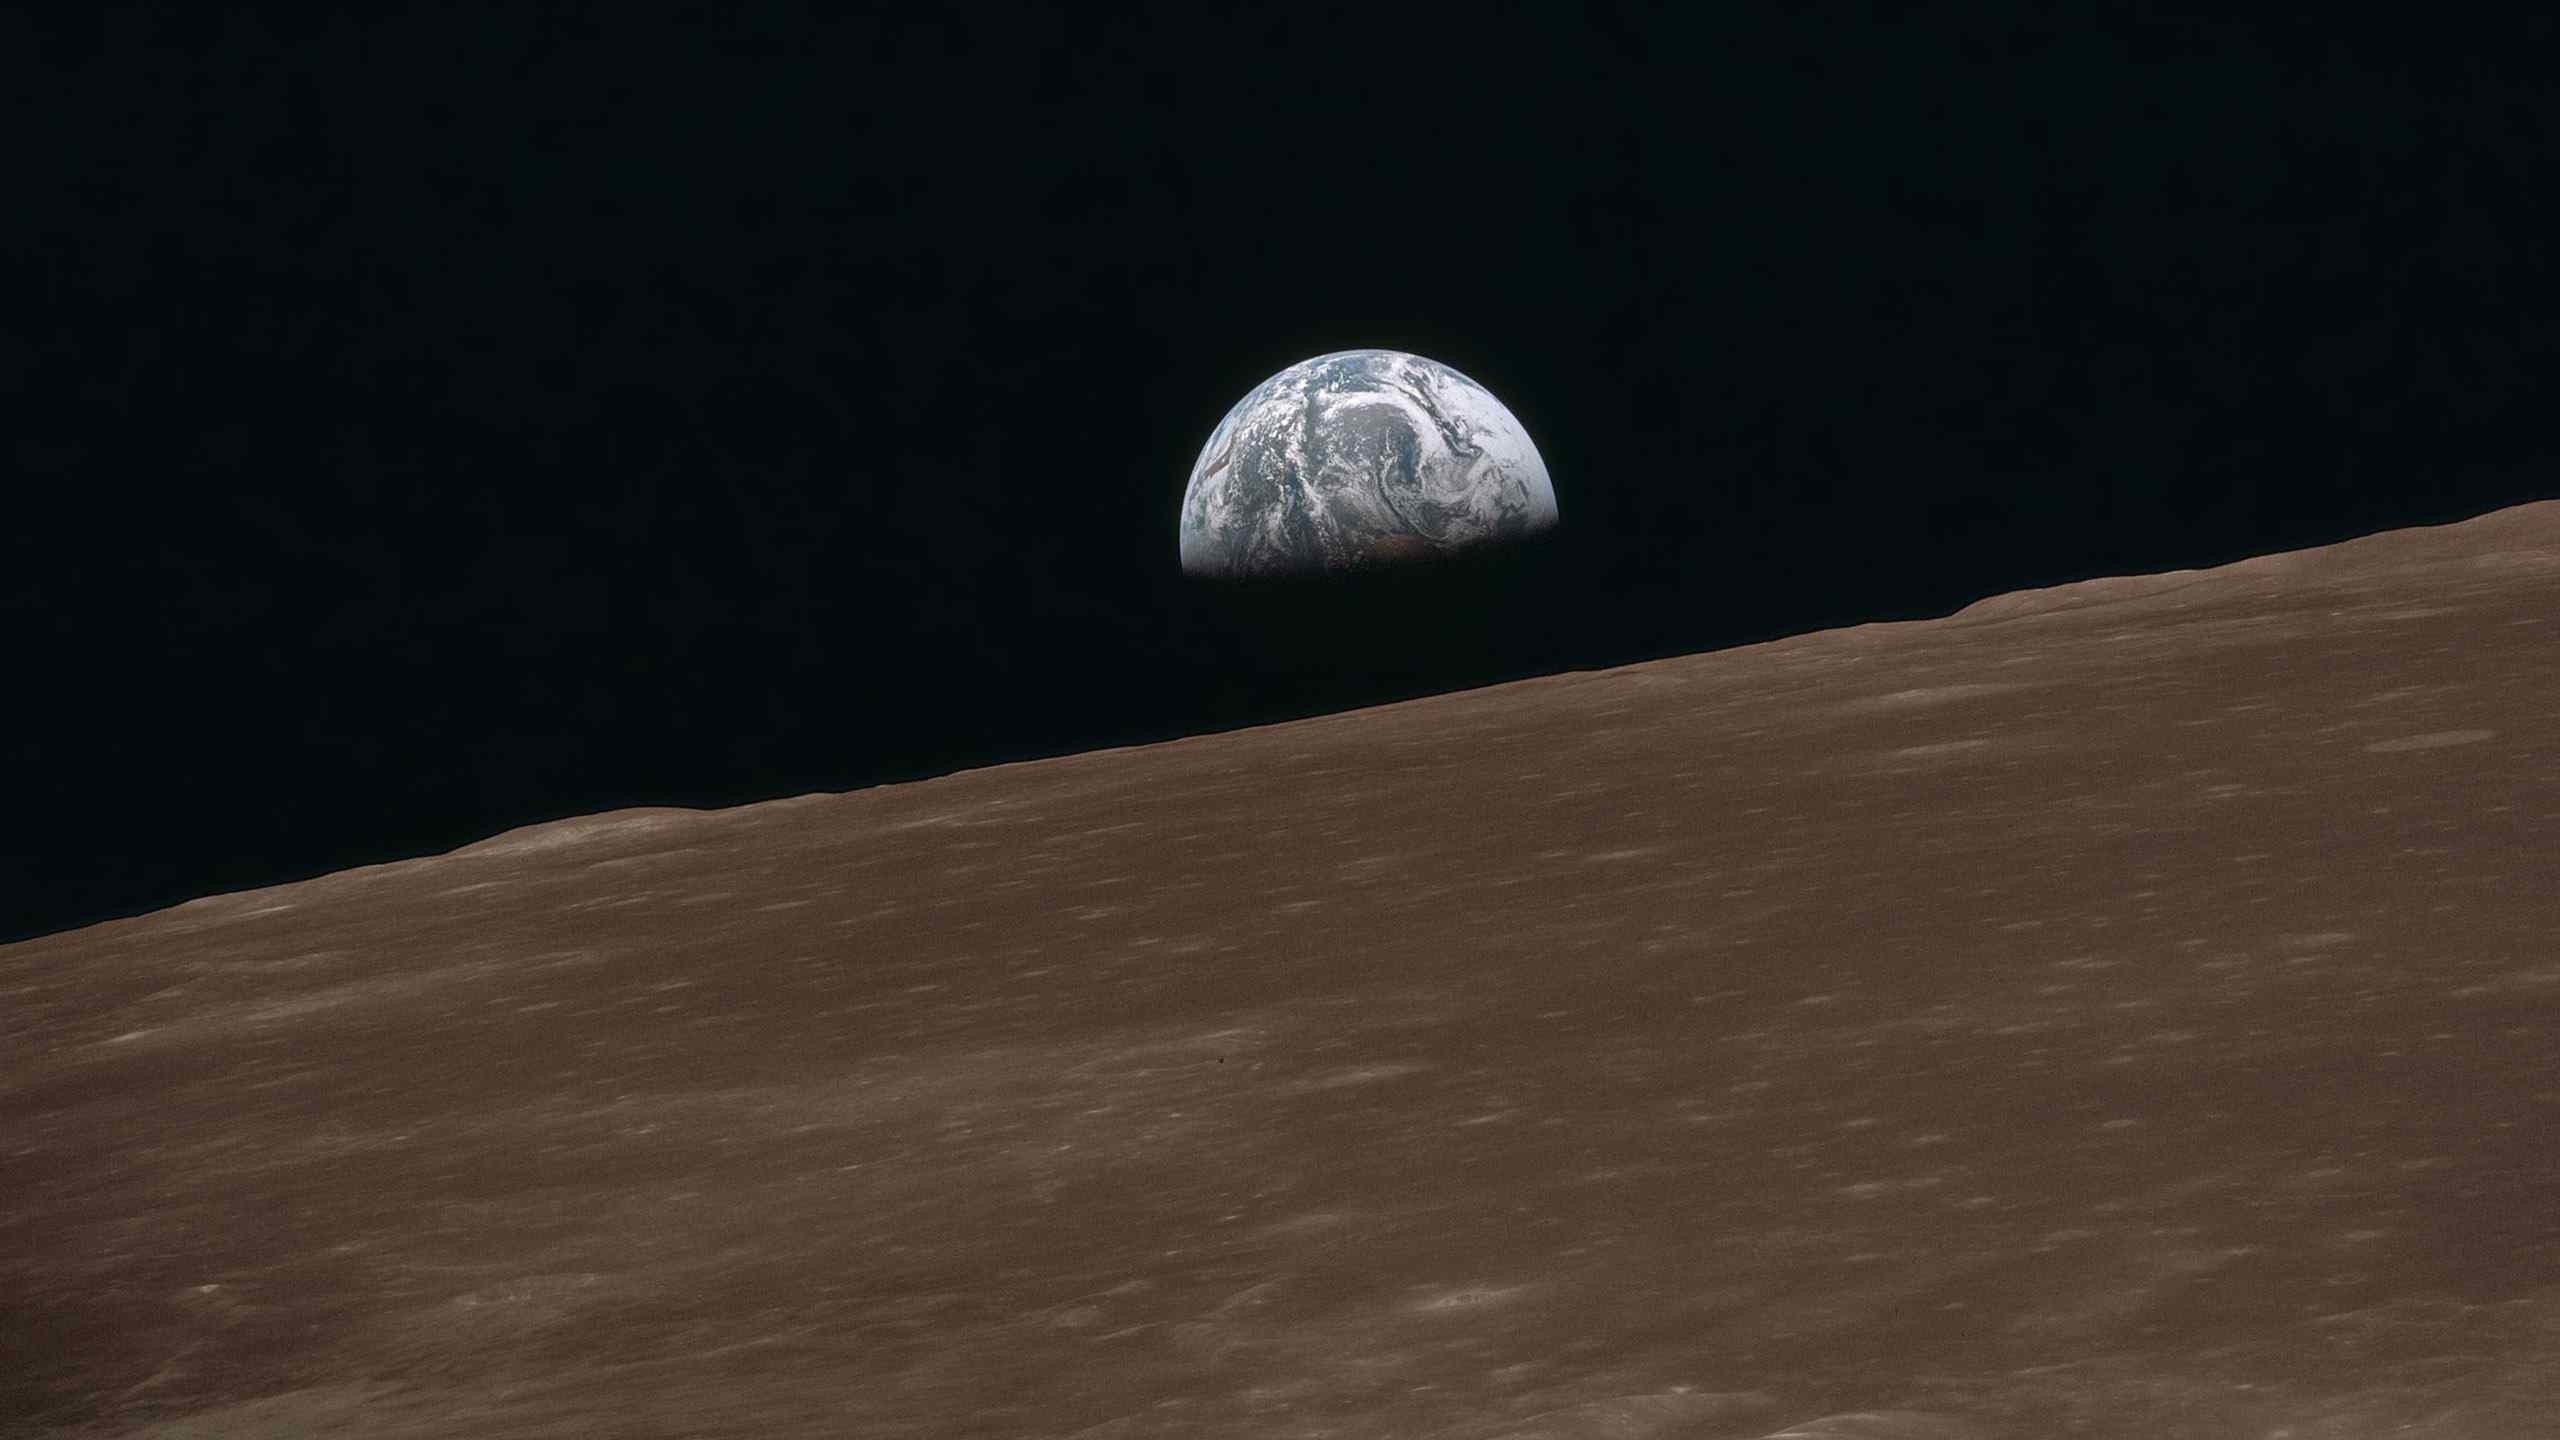 Hd images of earth planet